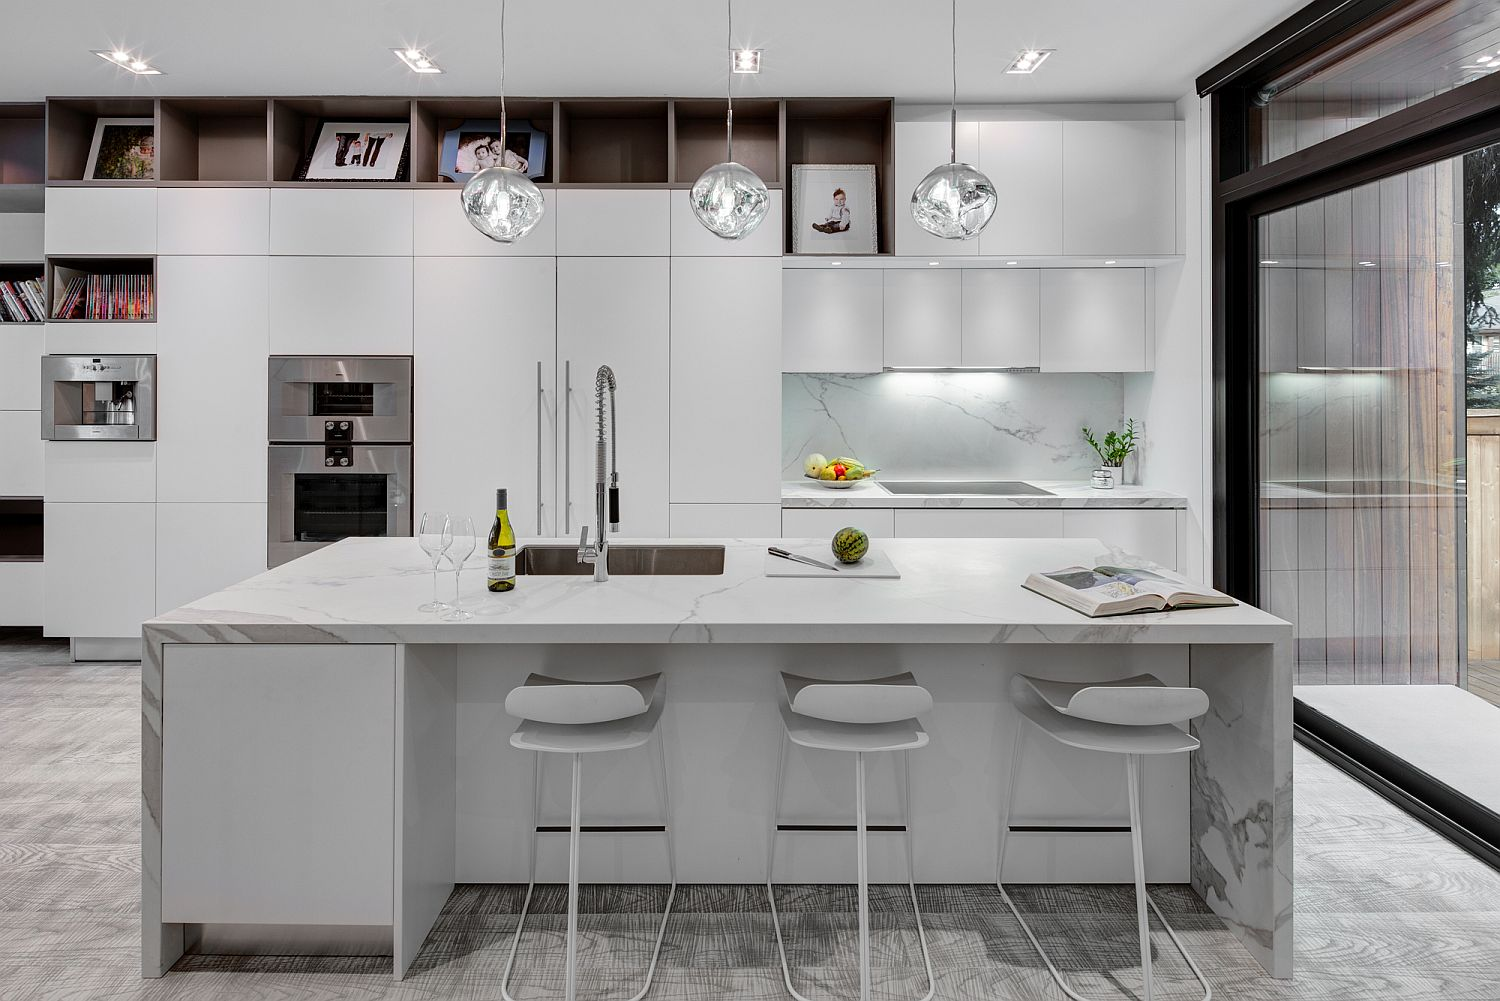 All-white-kitchen-of-the-house-with-a-stunning-central-island